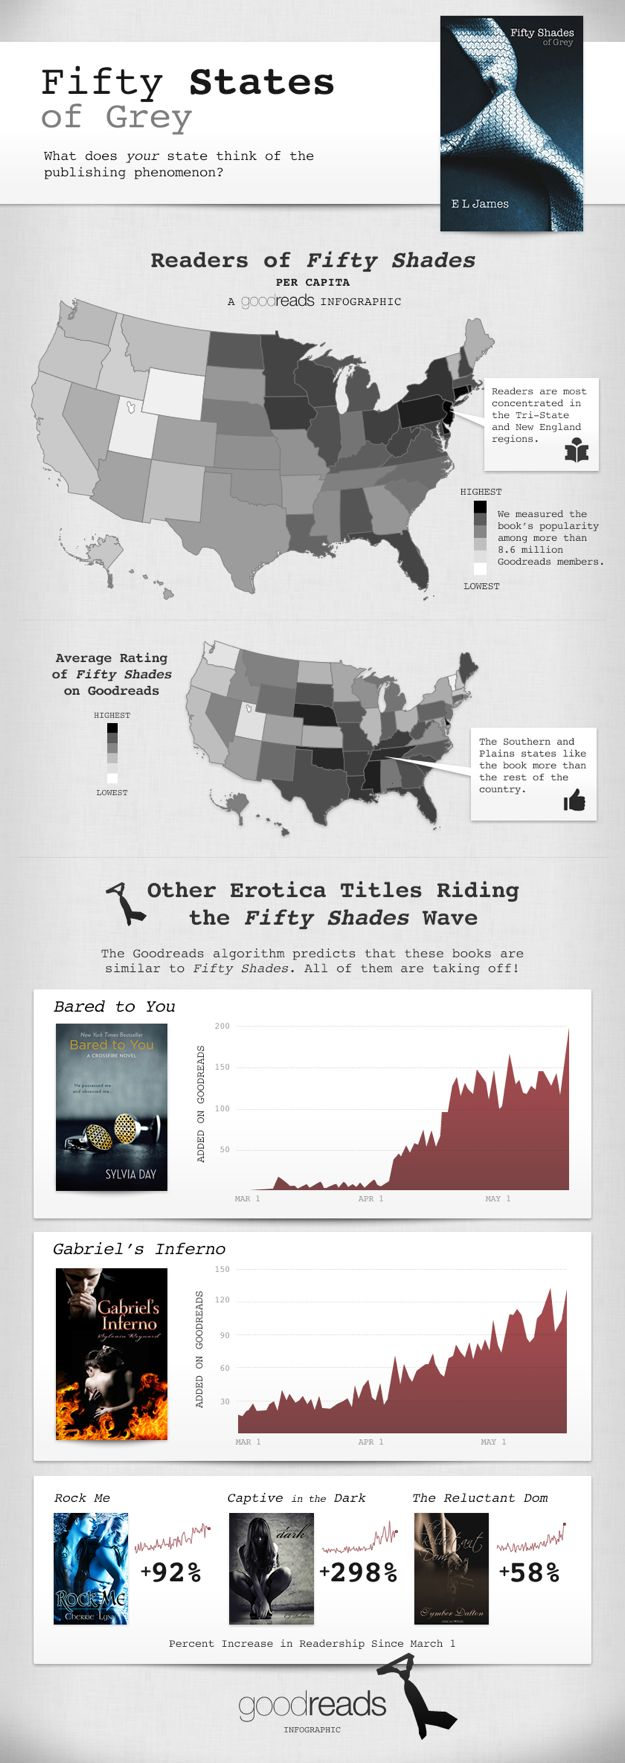 blog post fifty states of grey infographic fifty shades of grey continues to top best seller lists after almost three months of dominance the trilogy 10 million copies in six weeks